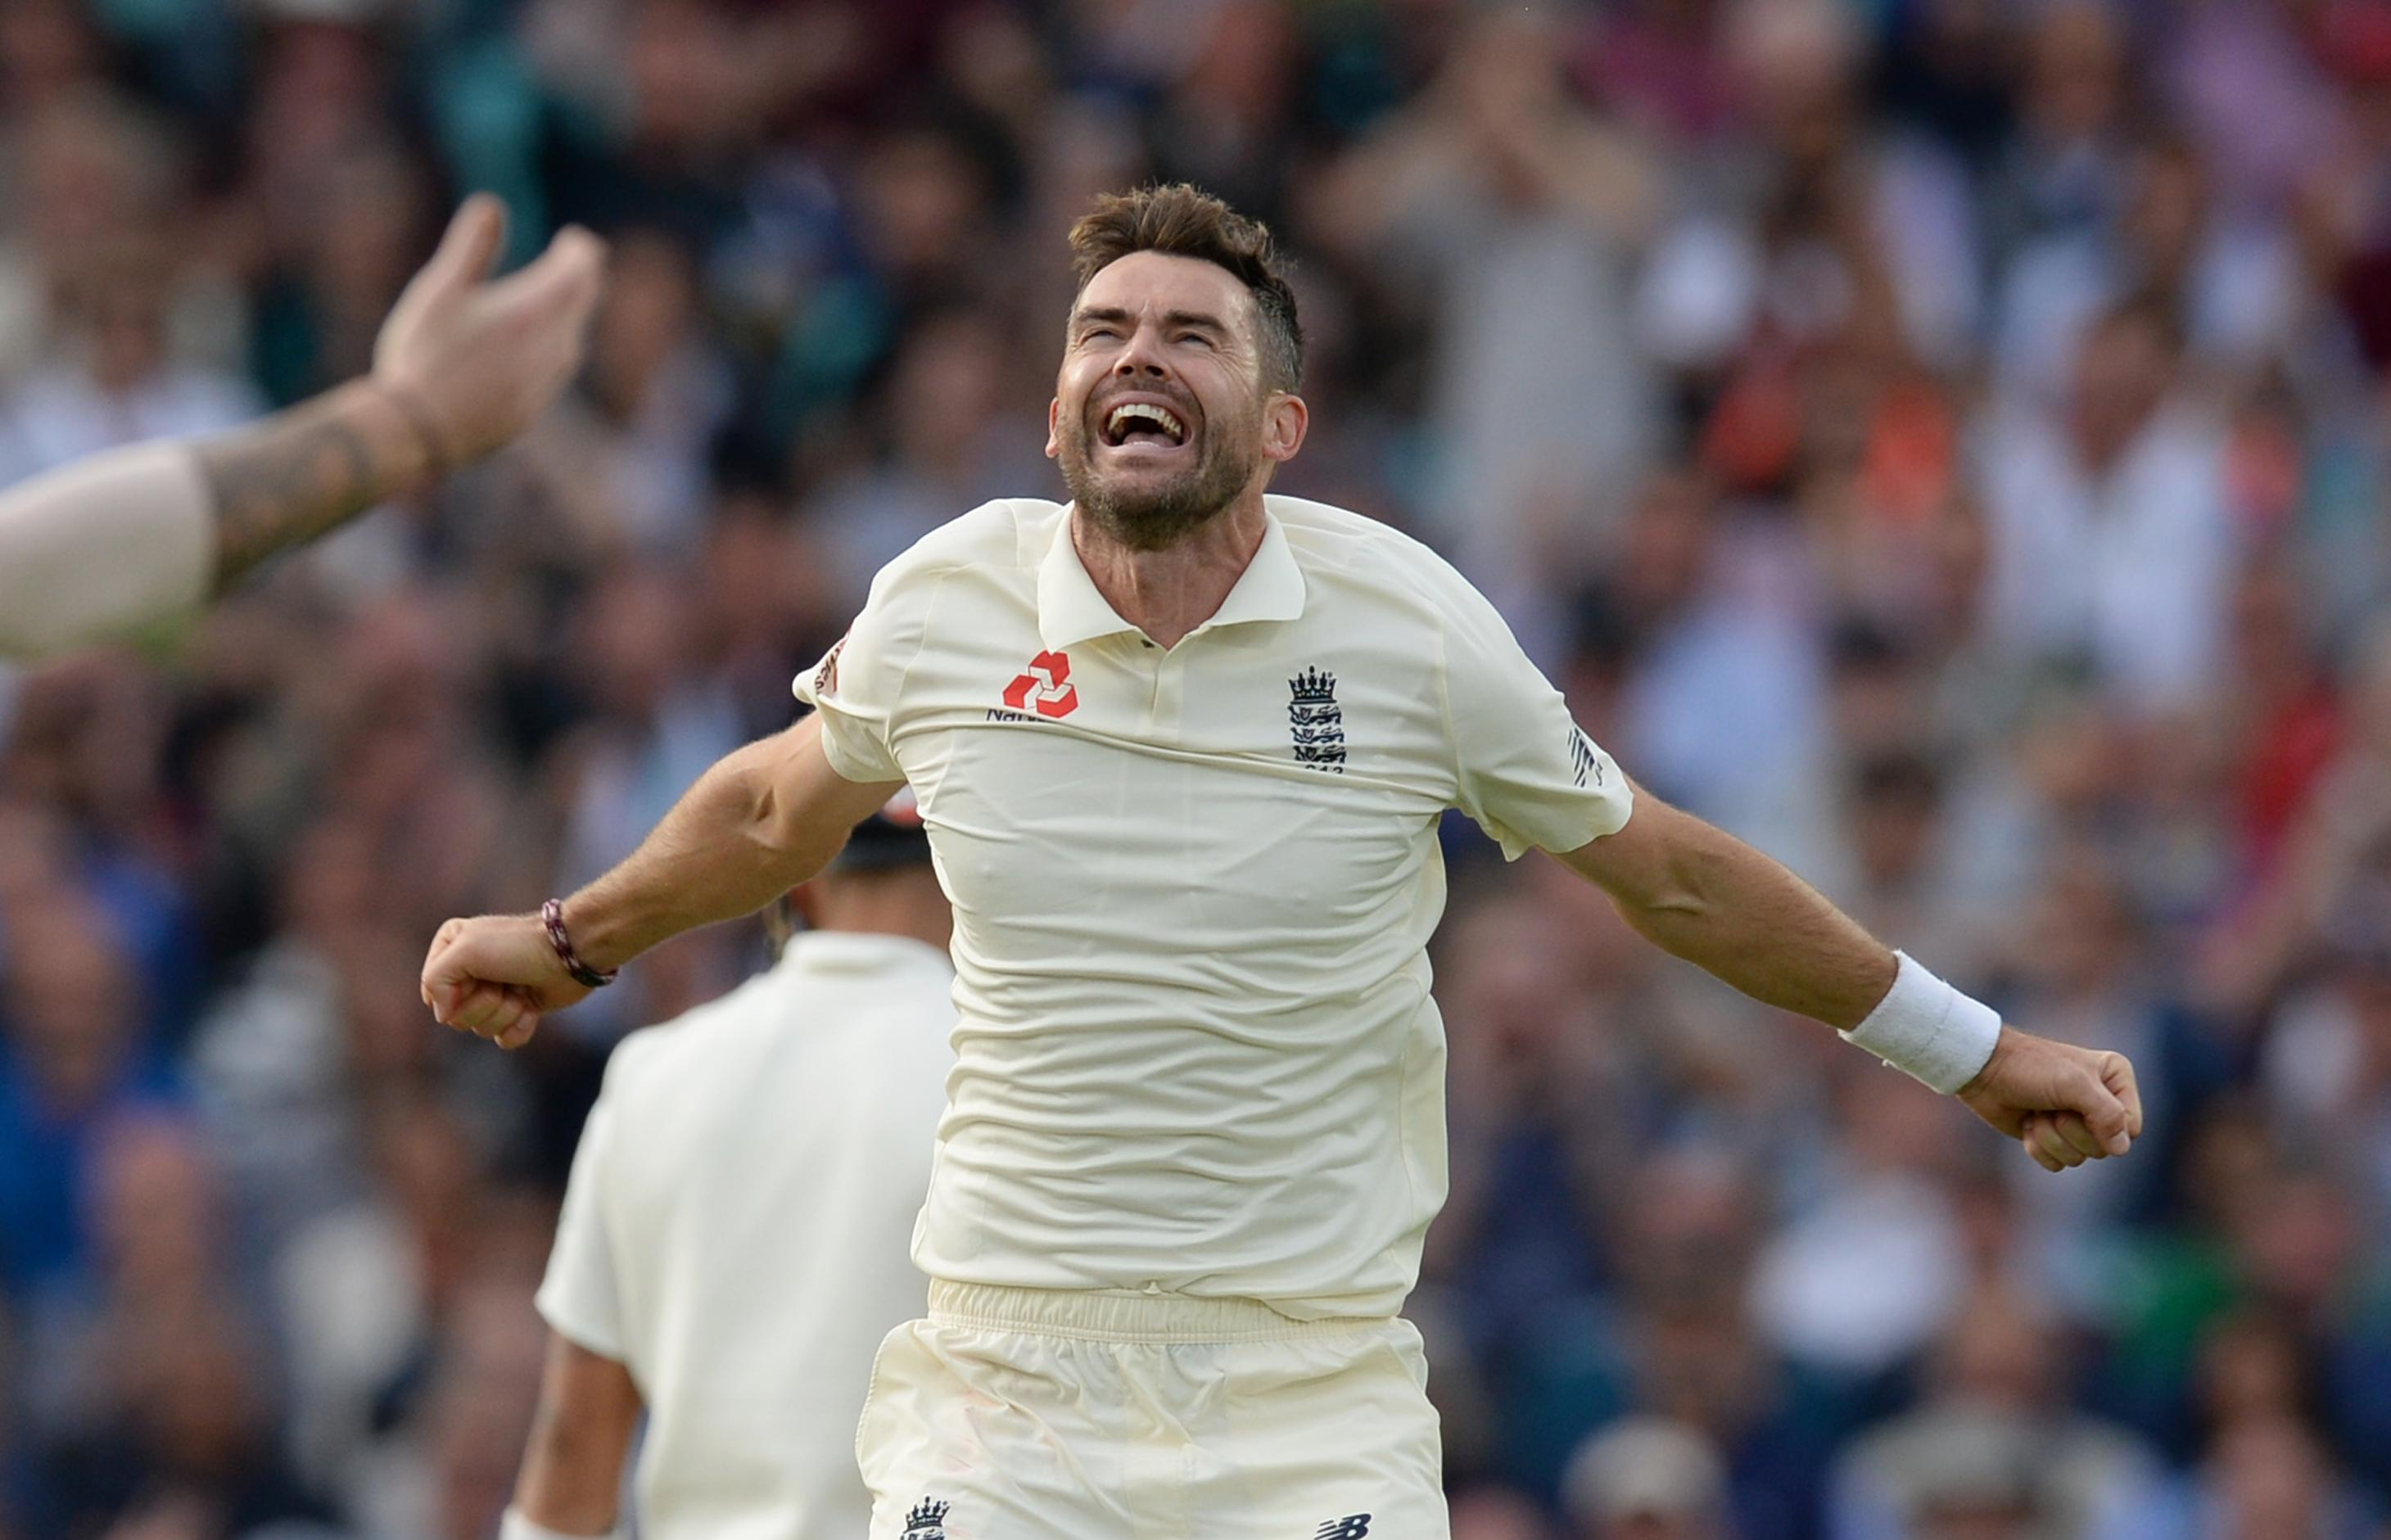 James Anderson of England celebrates after dismissing Cheteshwar Pujara during the fifth Specsavers Test Match between England and India at The Kia Oval.